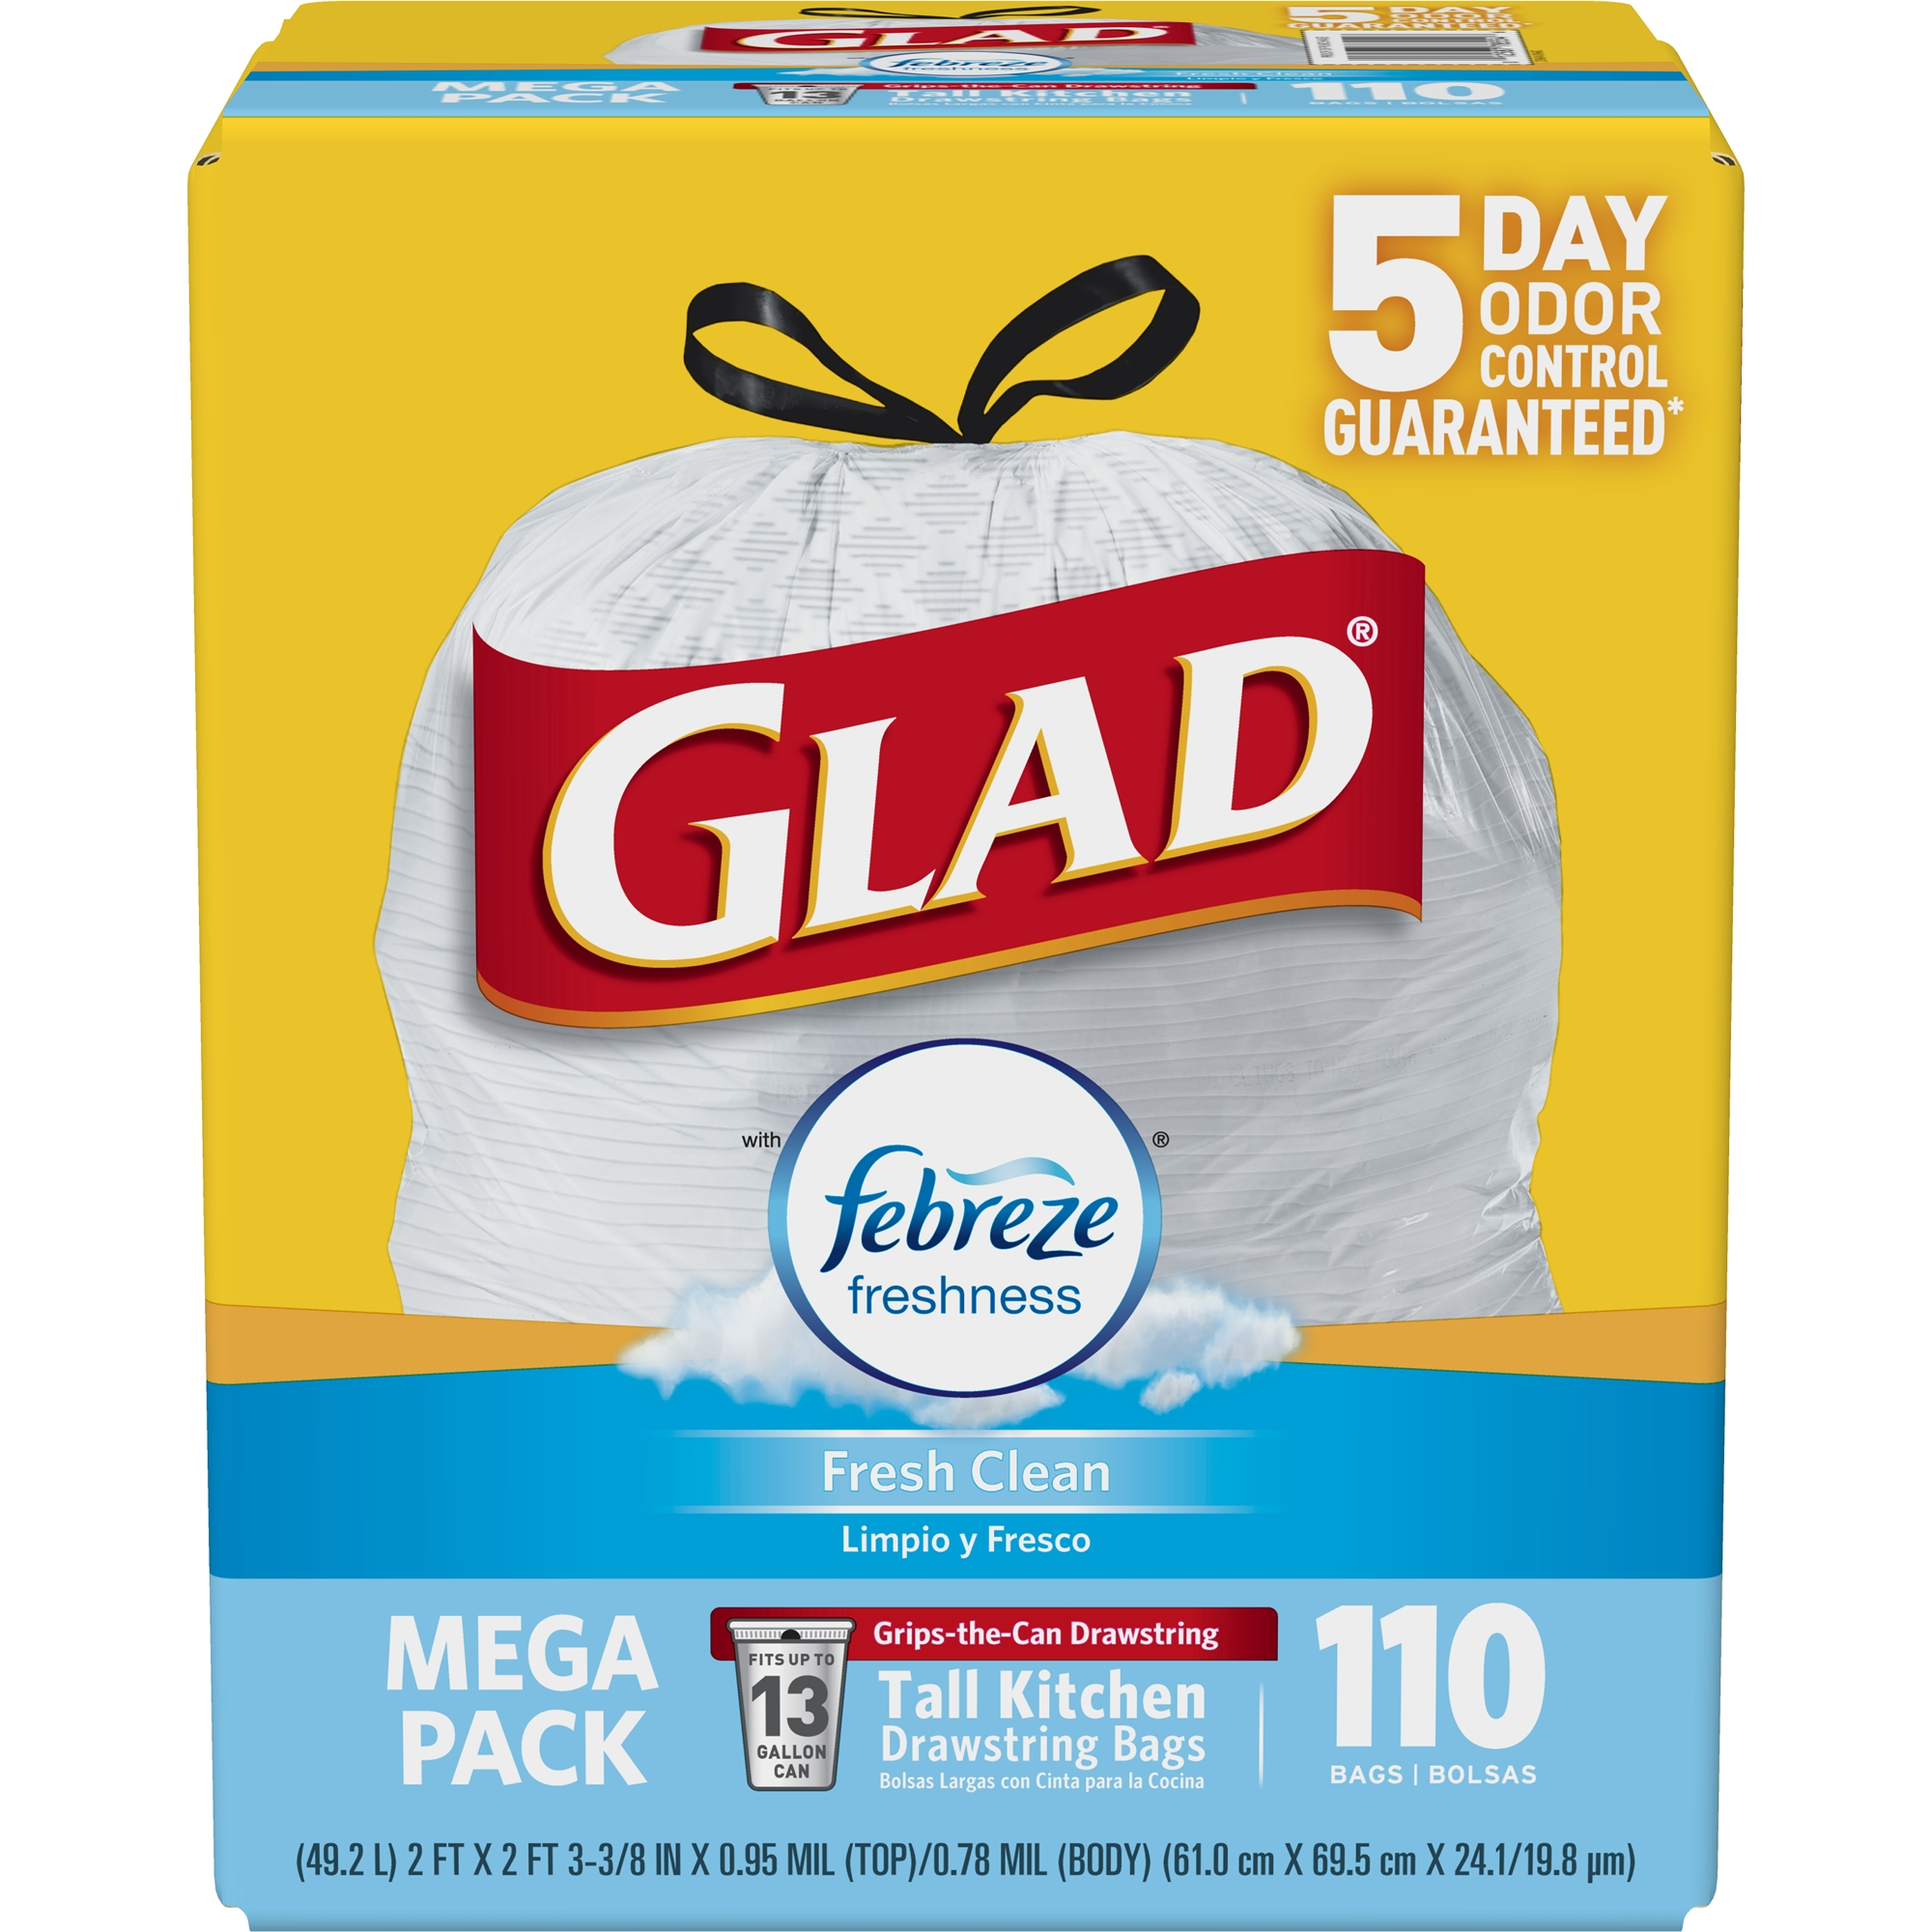 Glad OdorShield Tall Kitchen Drawstring Trash Bags - Febreze Fresh Clean - 13 gal - 110 ct